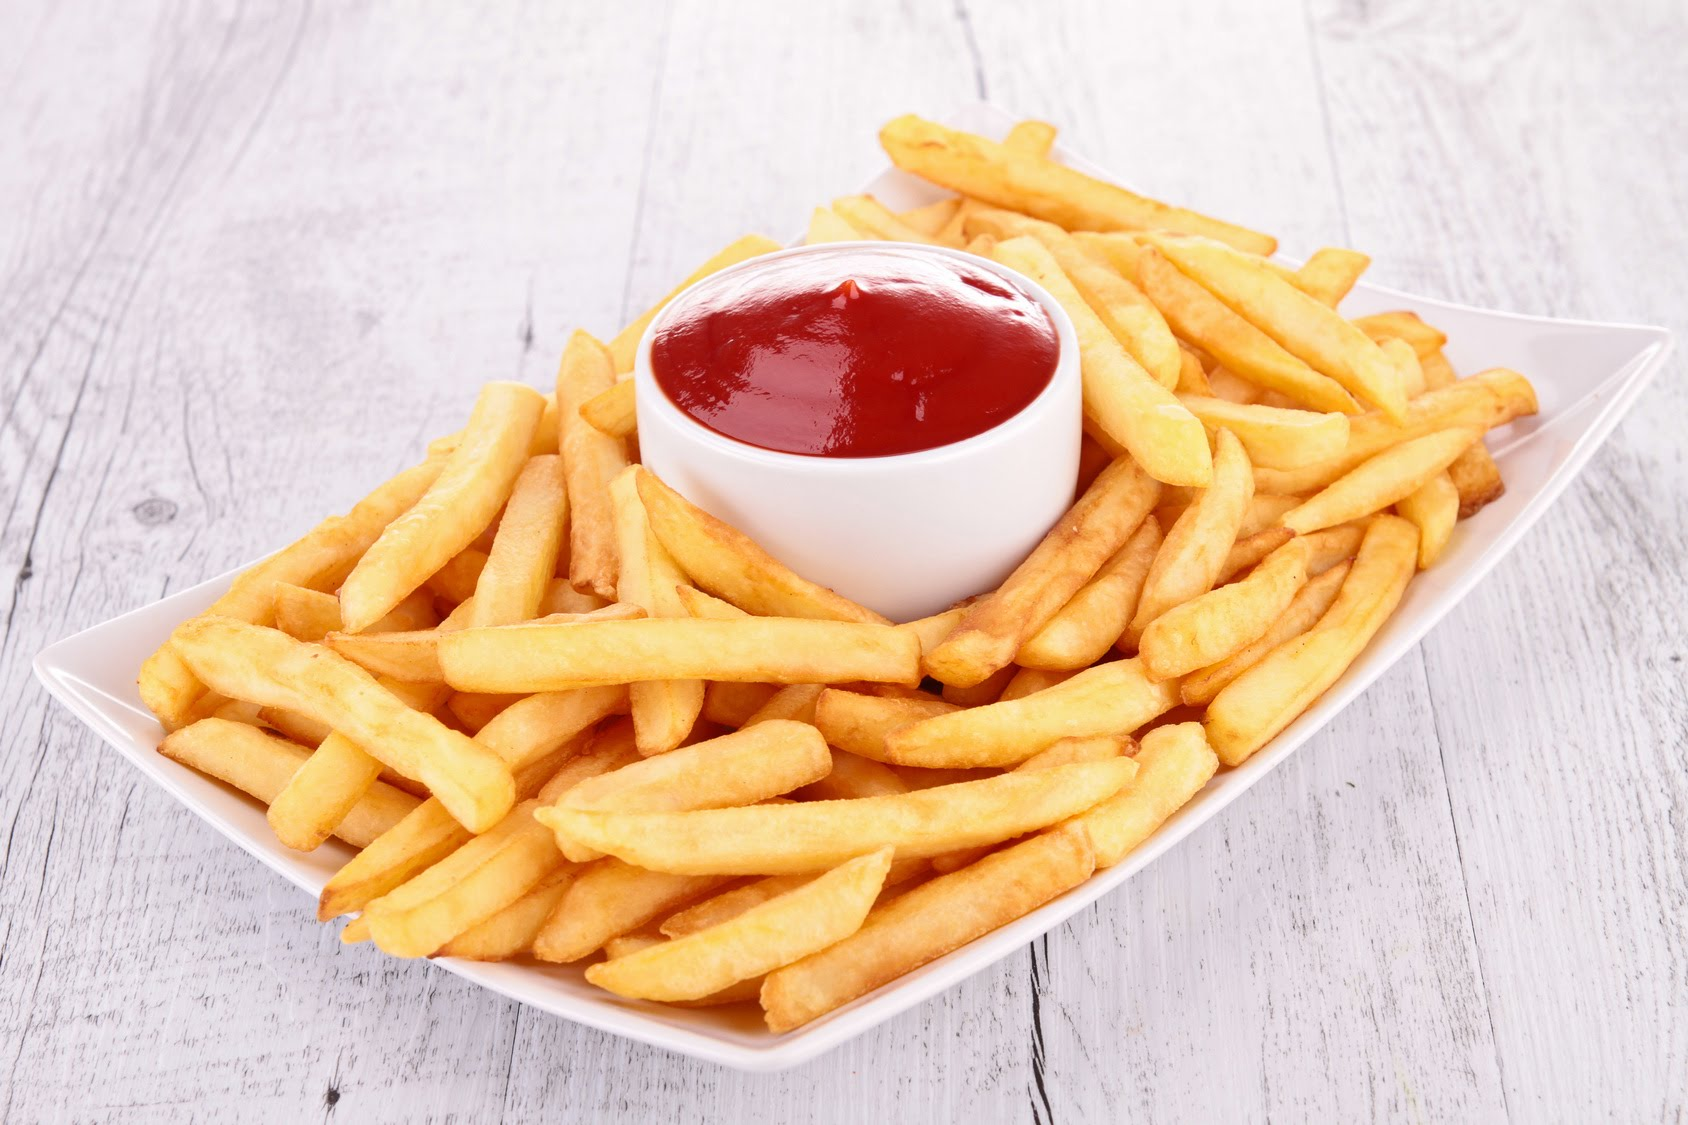 FRENCH FRIES FOOD THAT CAN CAUSE CANCER